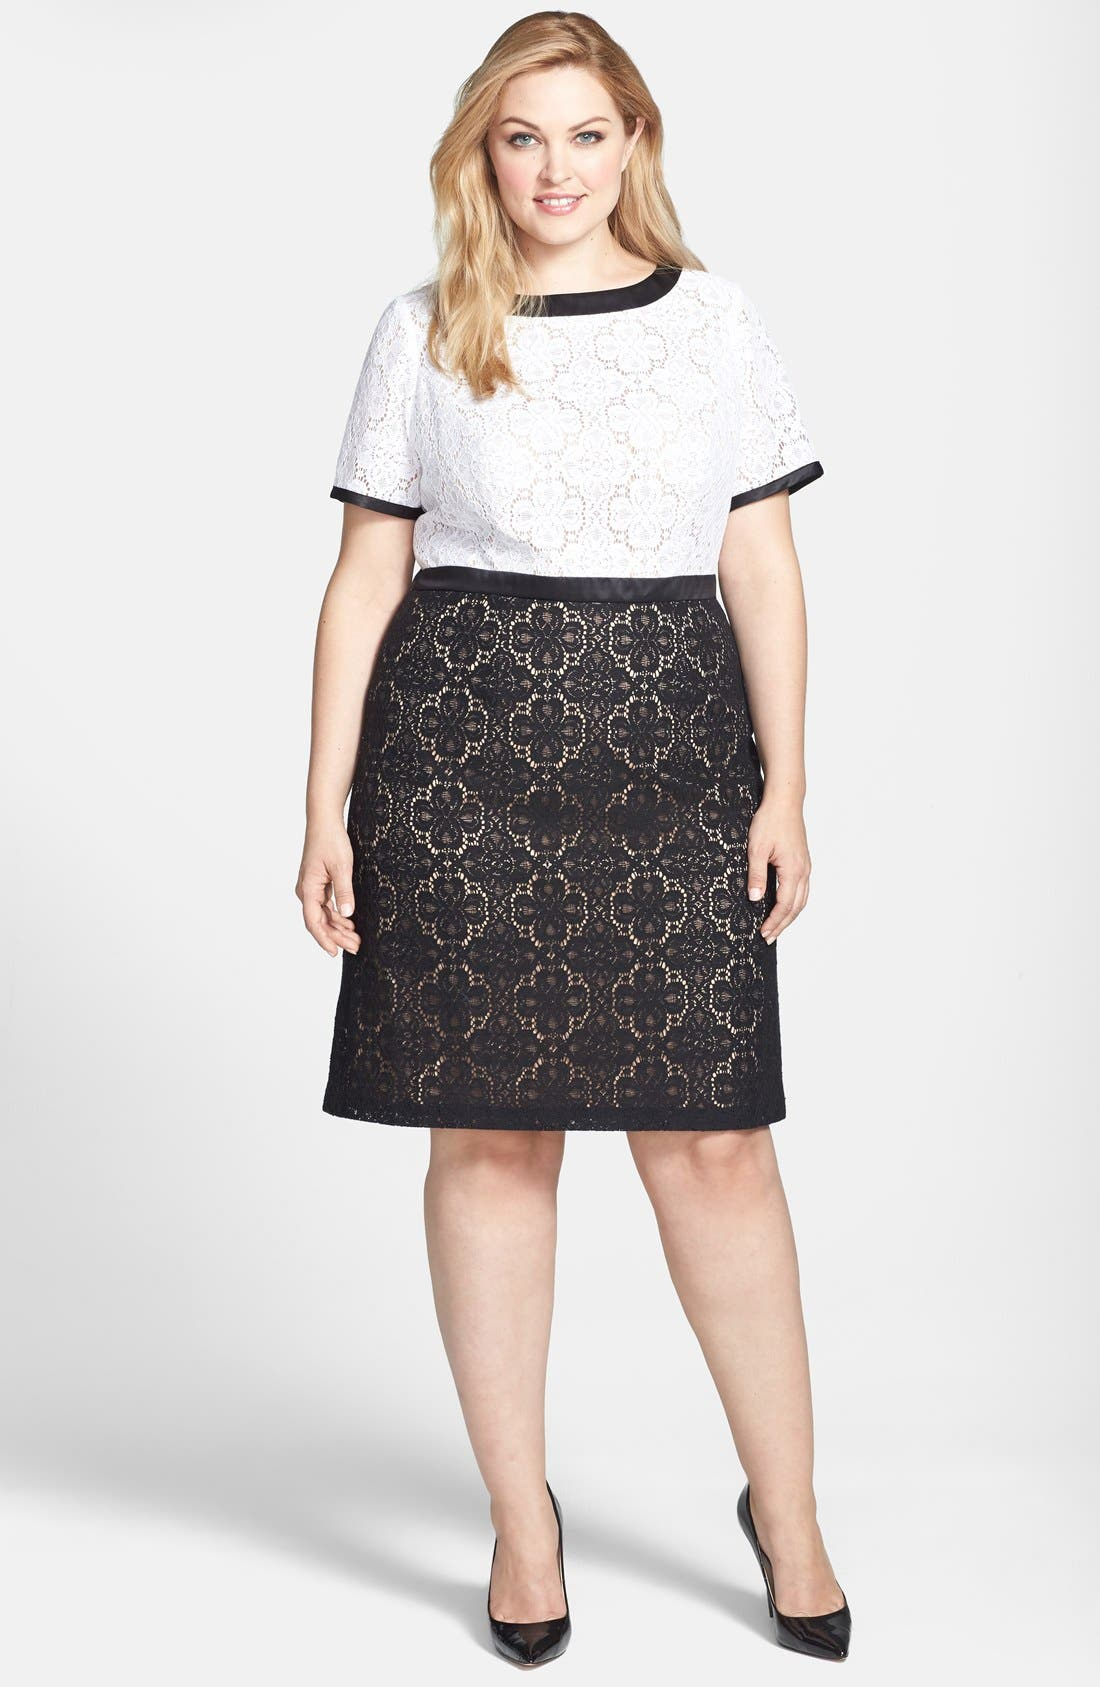 Alternate Image 1 Selected - Adrianna Papell Colorblock Lace Sheath Dress (Plus Size)